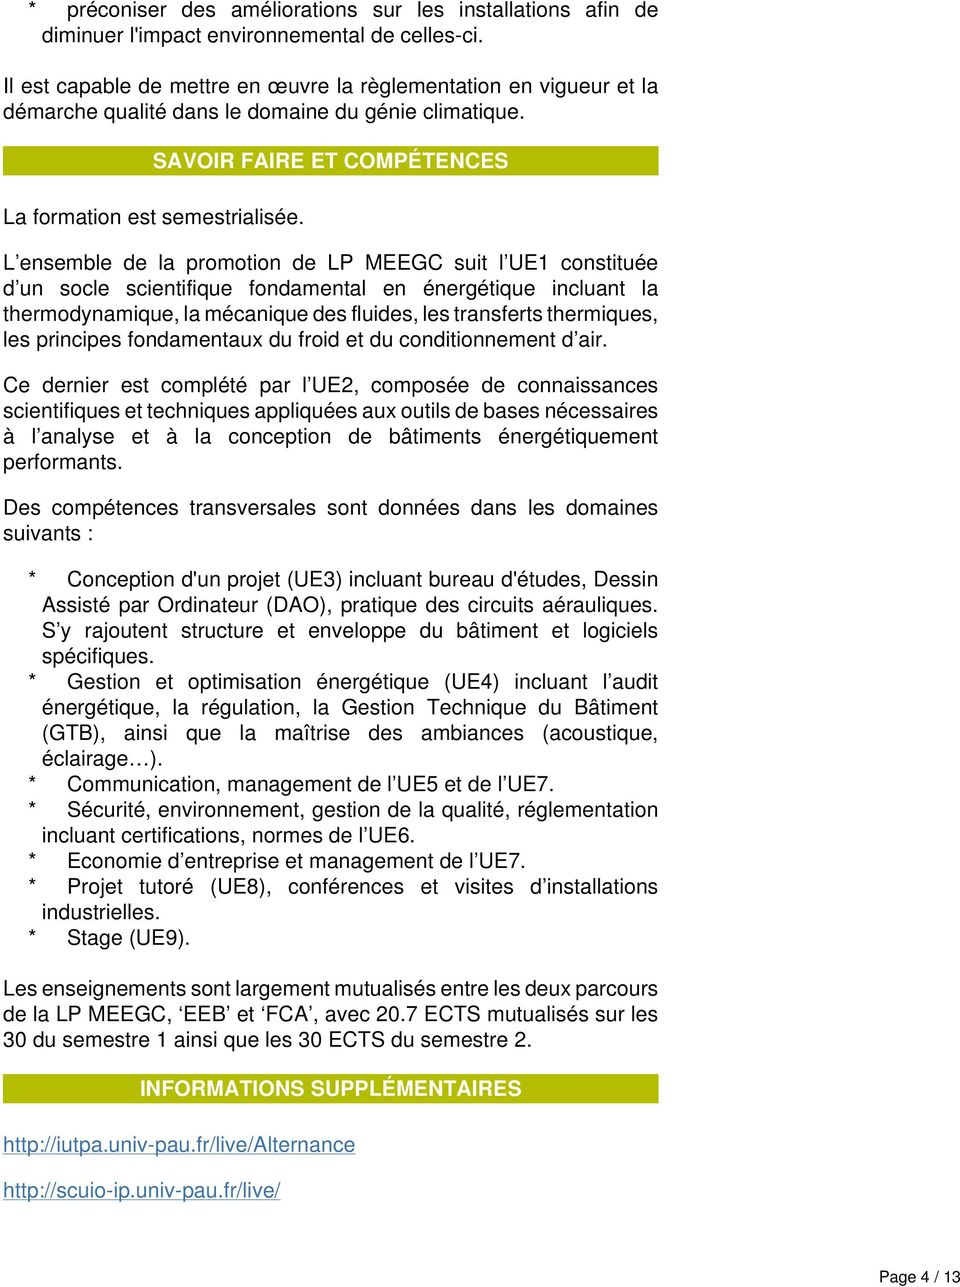 L ensemble de la promotion de LP MEEGC suit l UE1 constituée d un socle scientifique fondamental en énergétique incluant la thermodynamique, la mécanique des fluides, les transferts thermiques, les